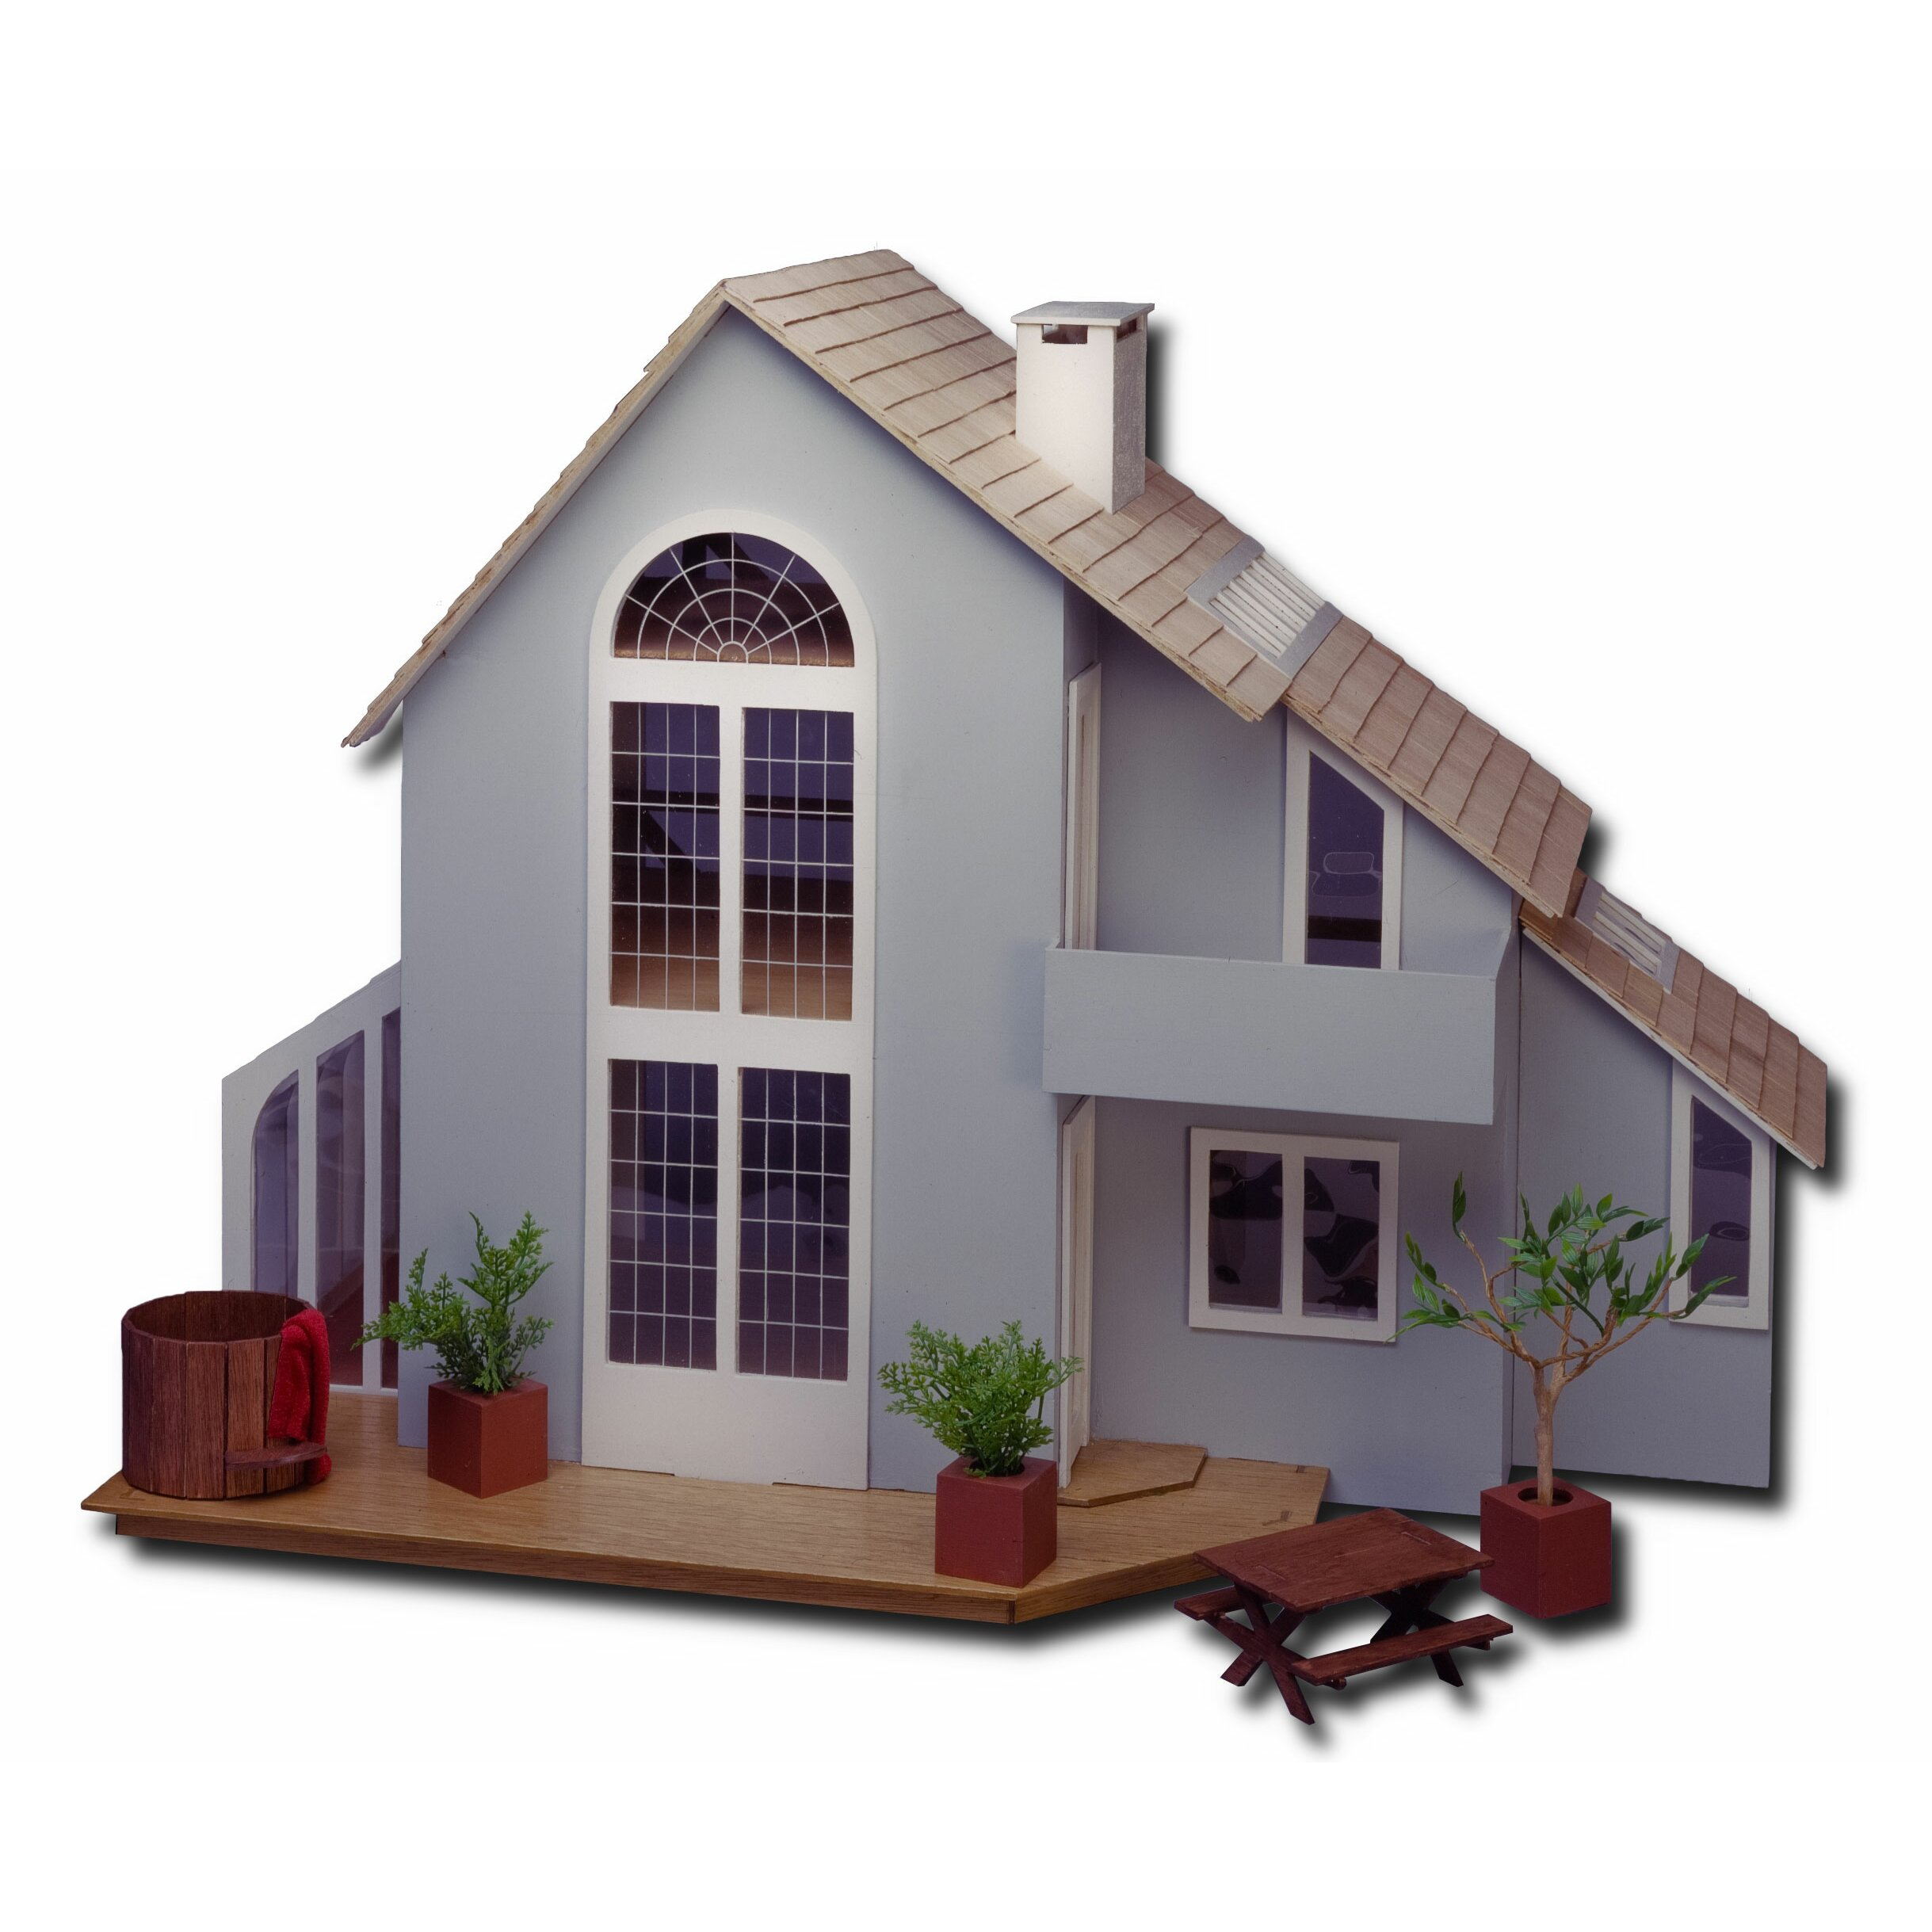 Greenleaf Dollhouses Brookwood Dollhouse & Reviews